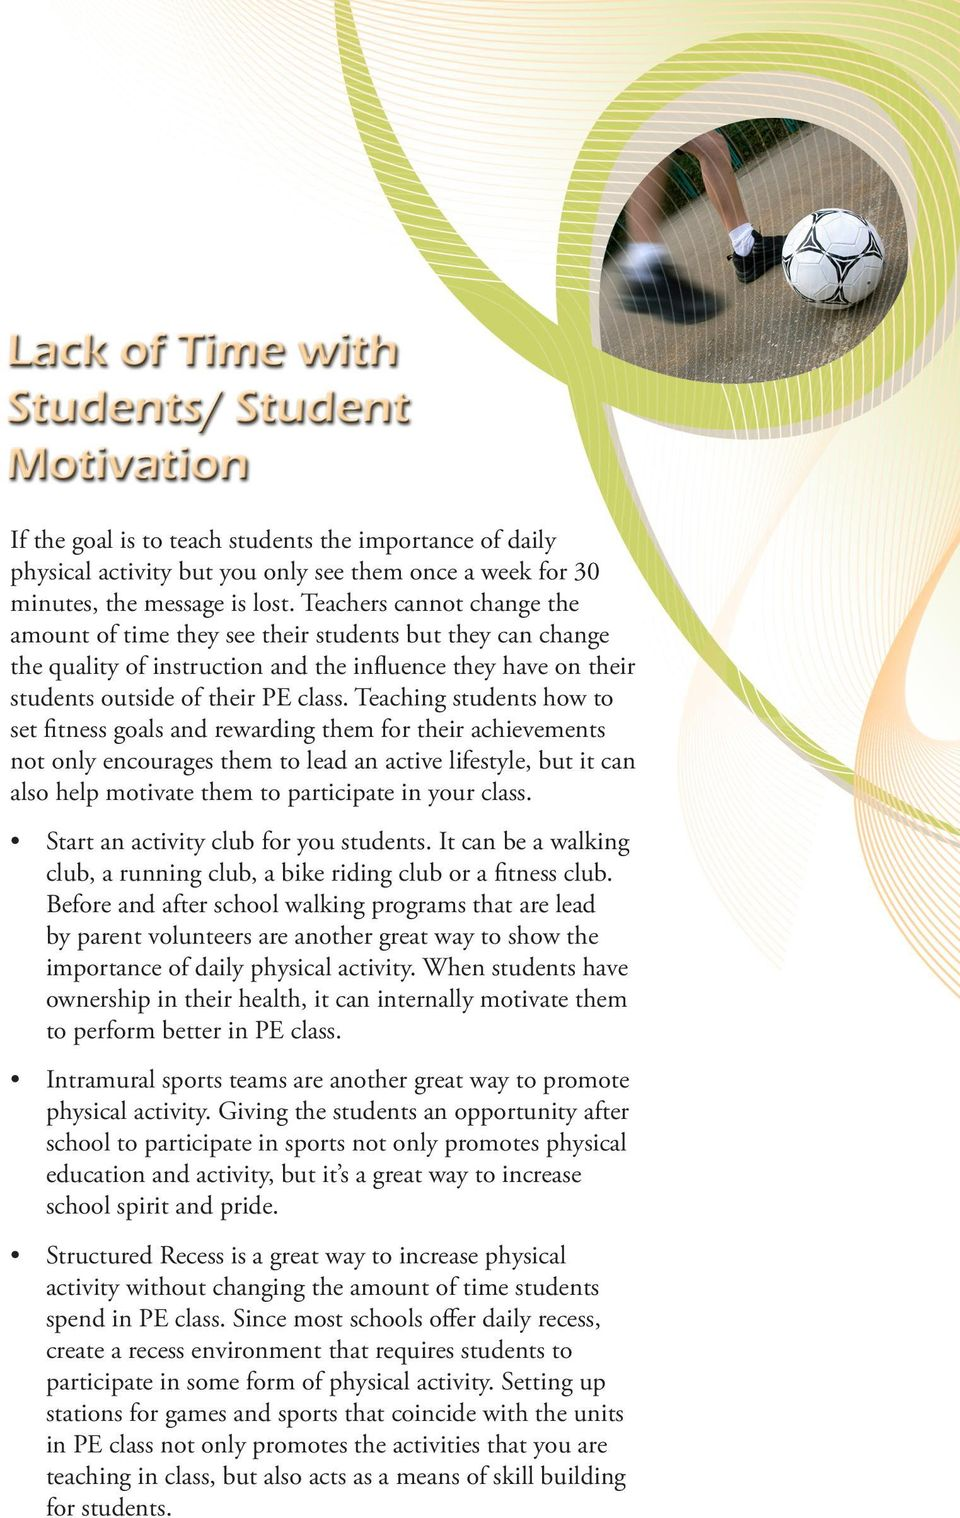 Teaching students how to set fitness goals and rewarding them for their achievements not only encourages them to lead an active lifestyle, but it can also help motivate them to participate in your